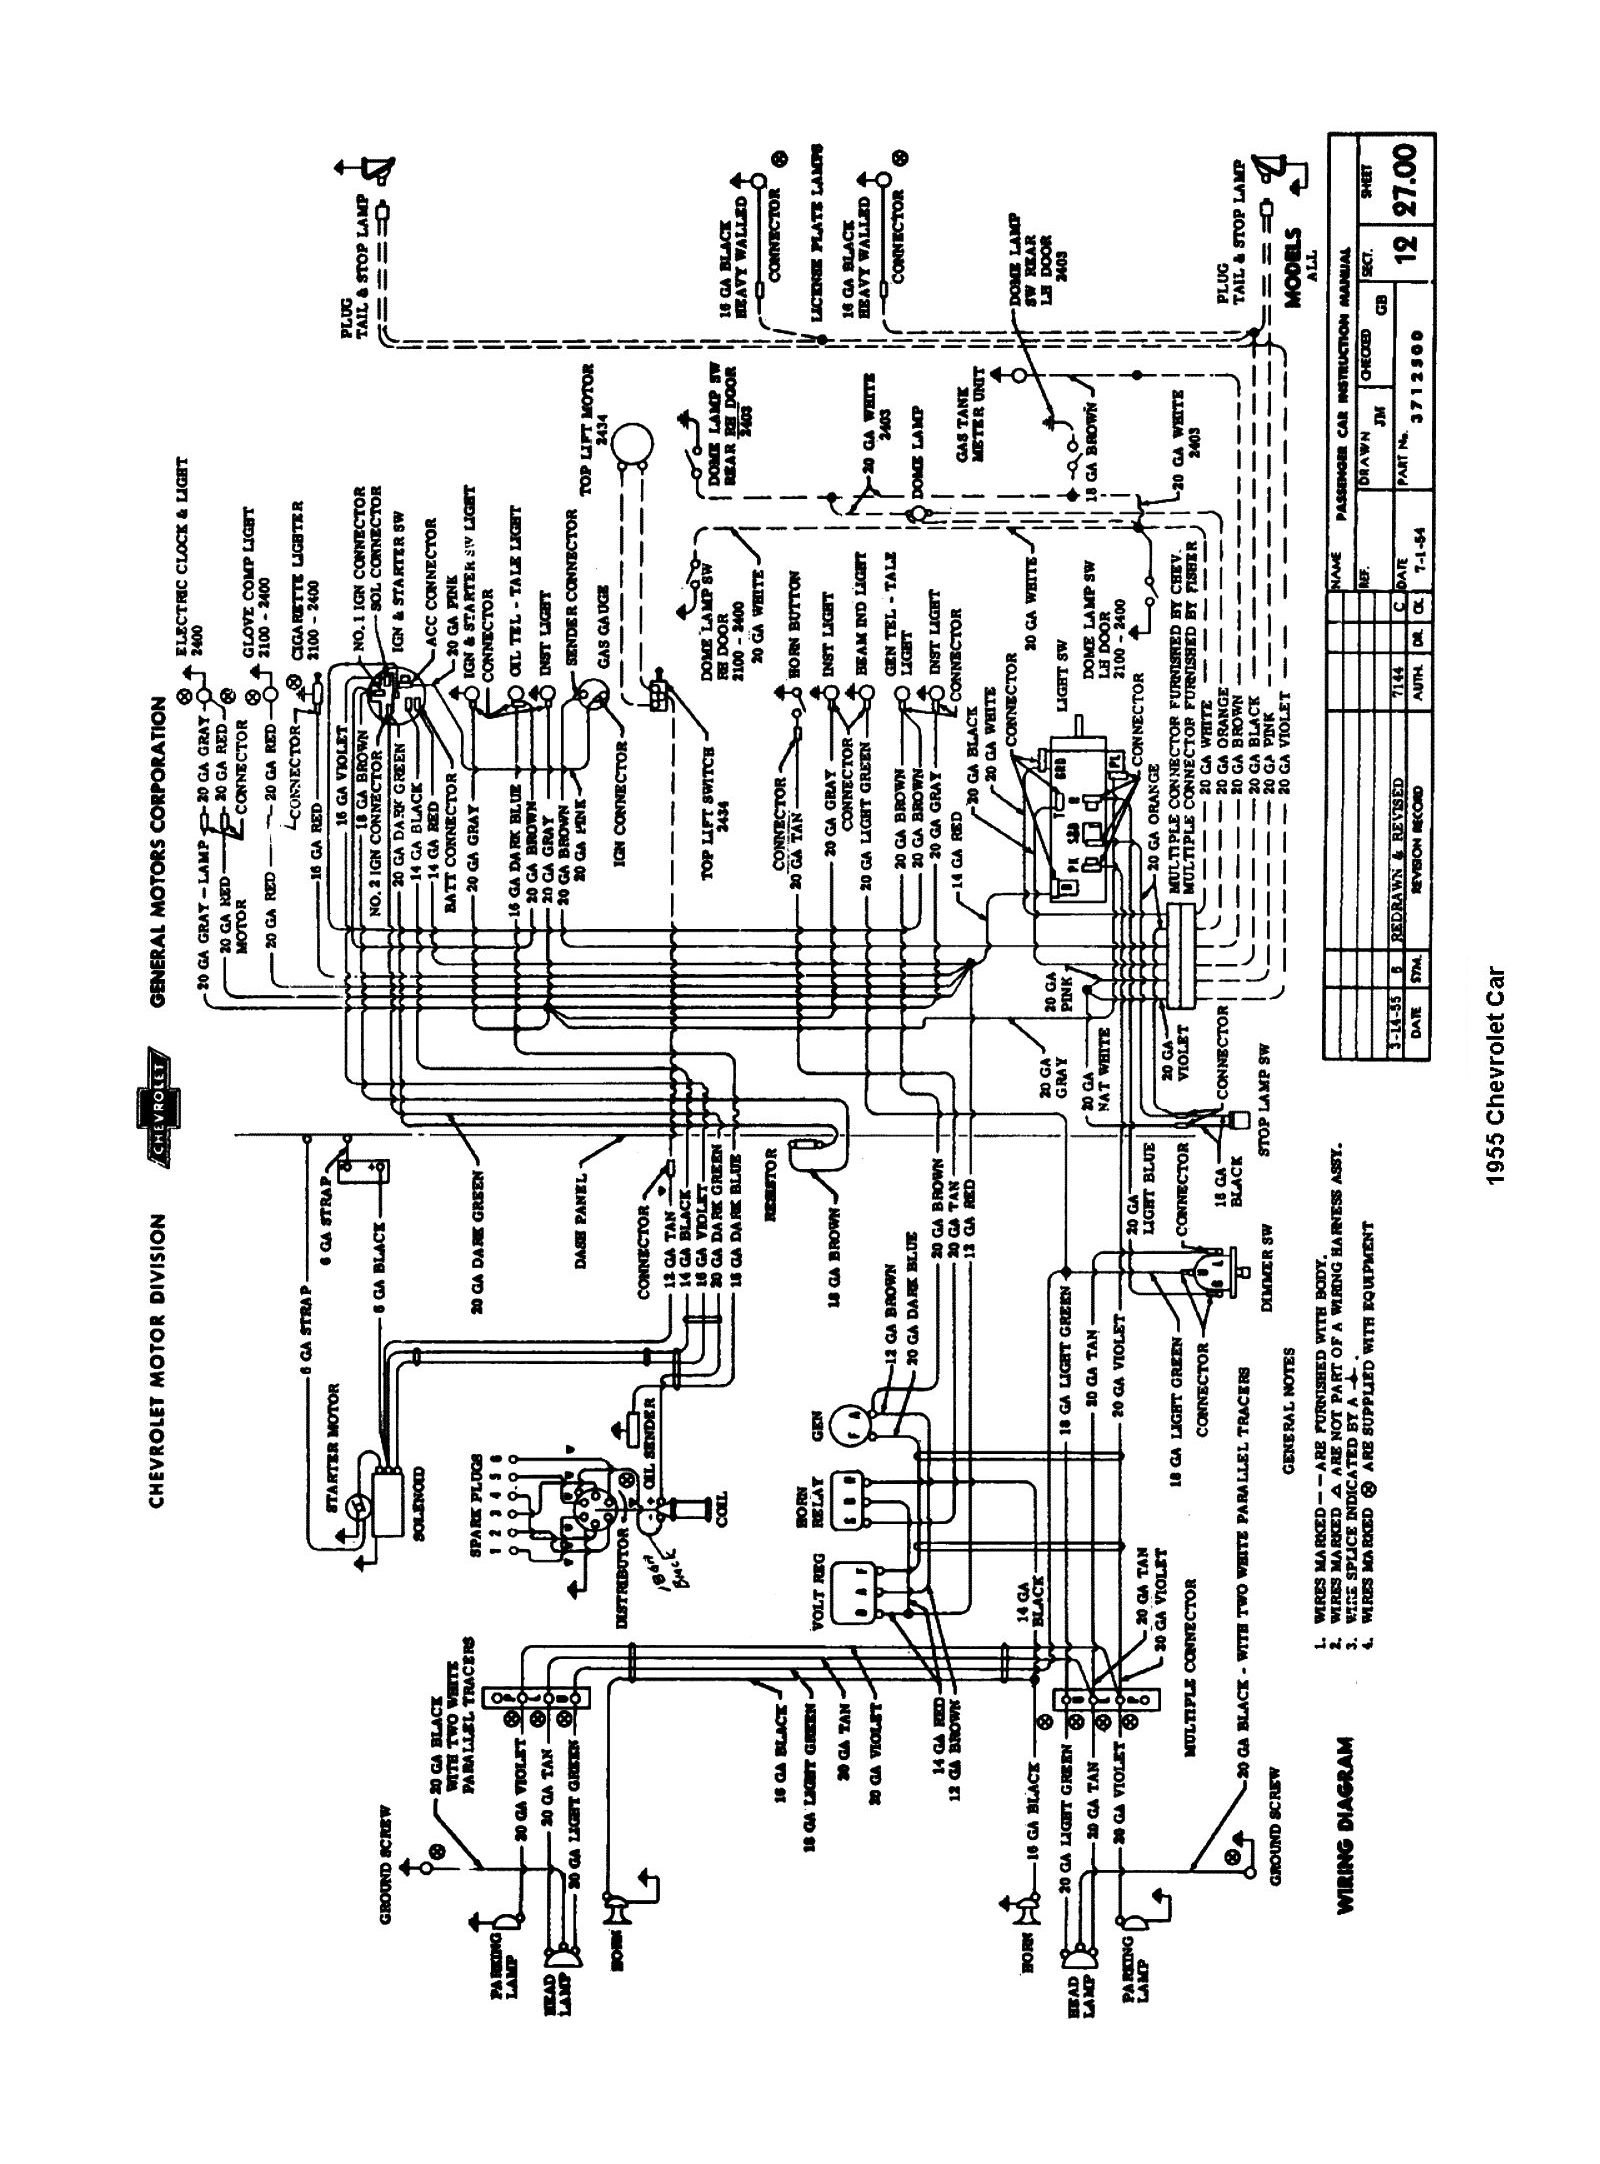 1950 Chevy Car Wiring Diagram Opinions About 1947 Chrysler Diagrams Rh Oldcarmanualproject Com Styleline Deluxe Truck